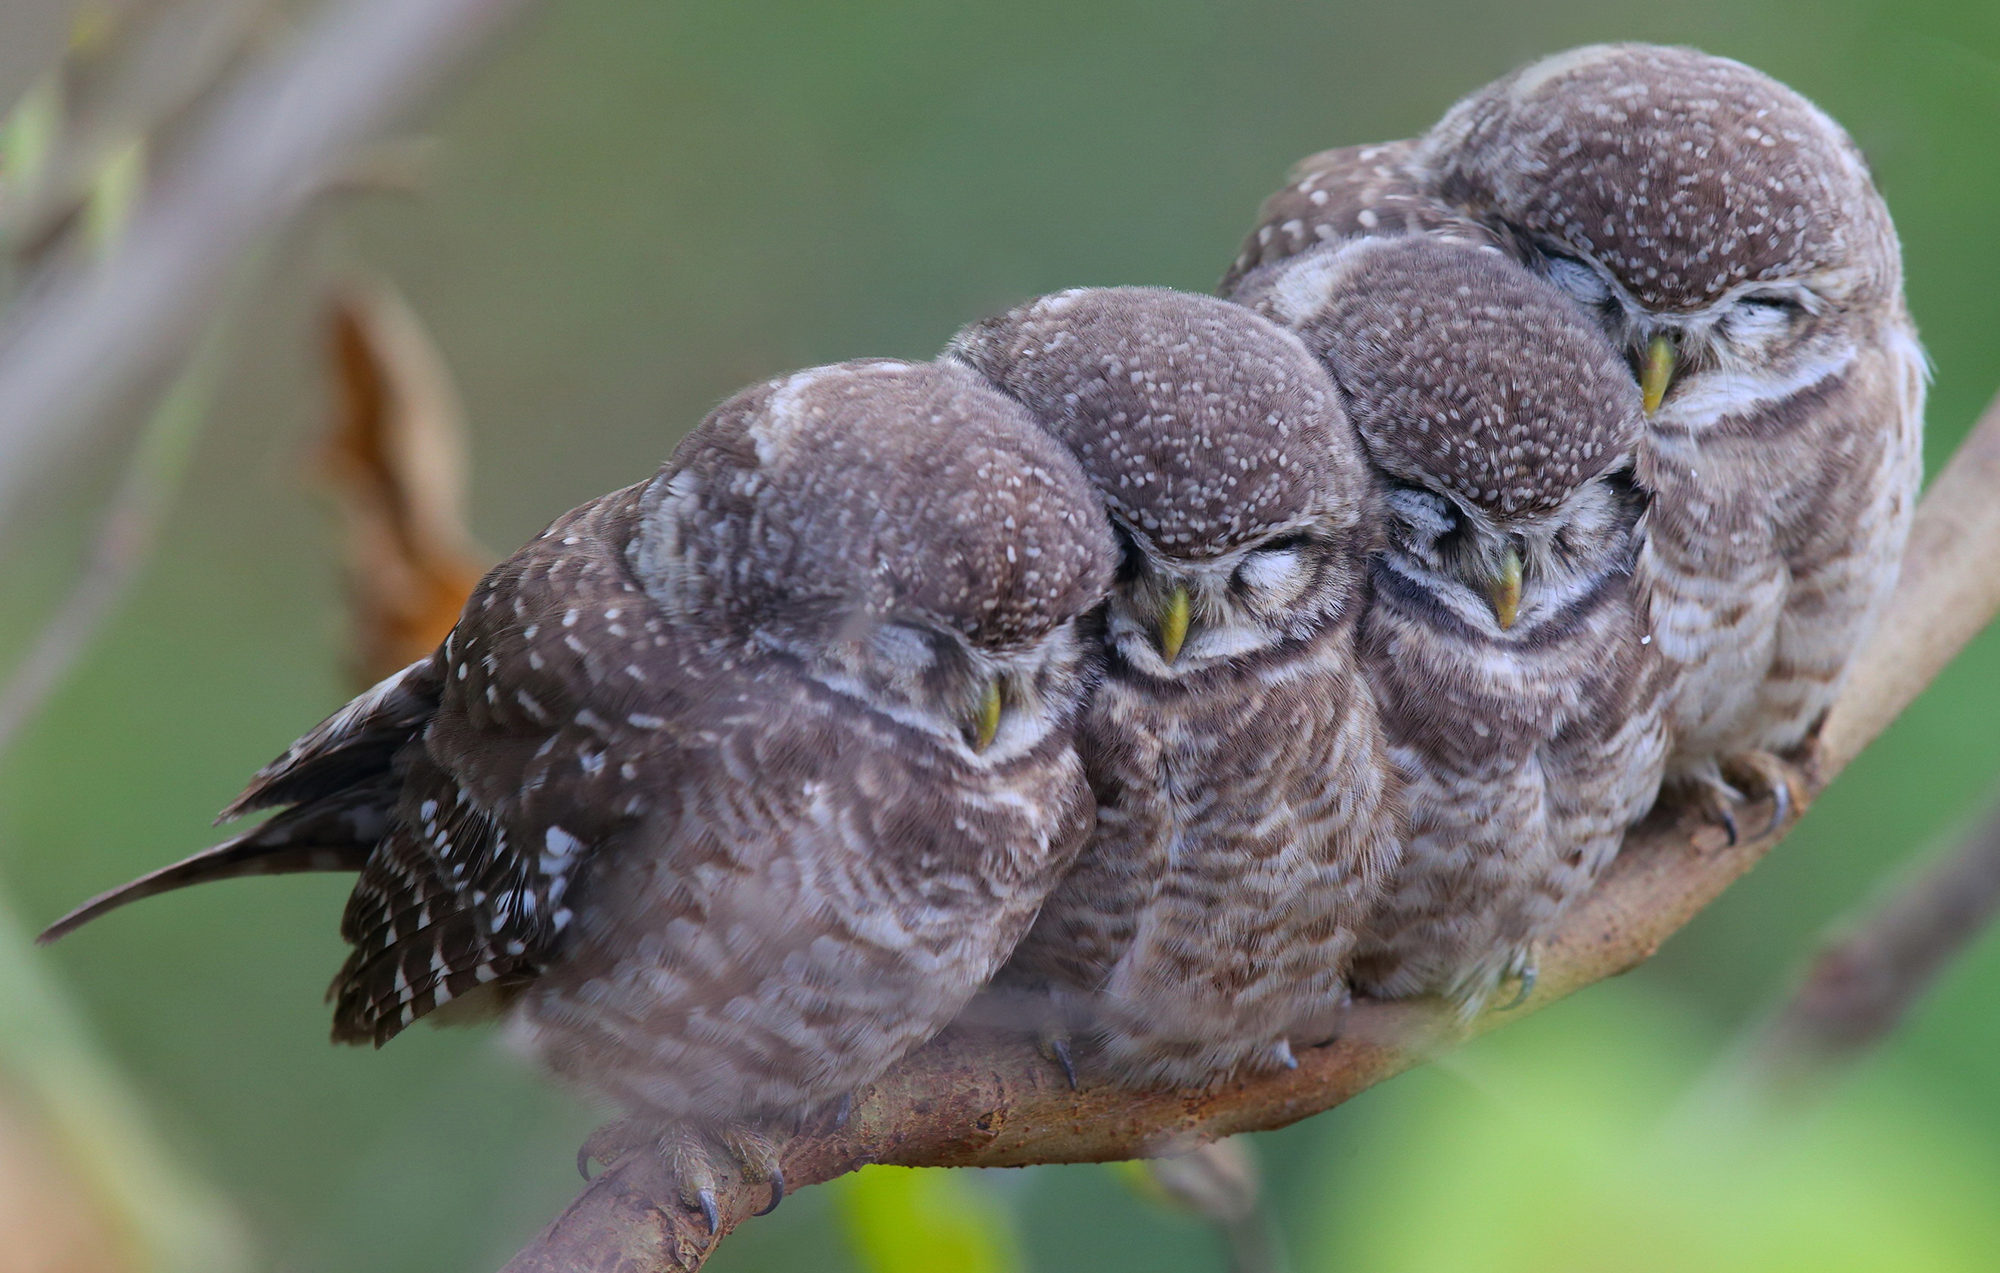 baby owls huddling on tree branch hd wallpaper background image